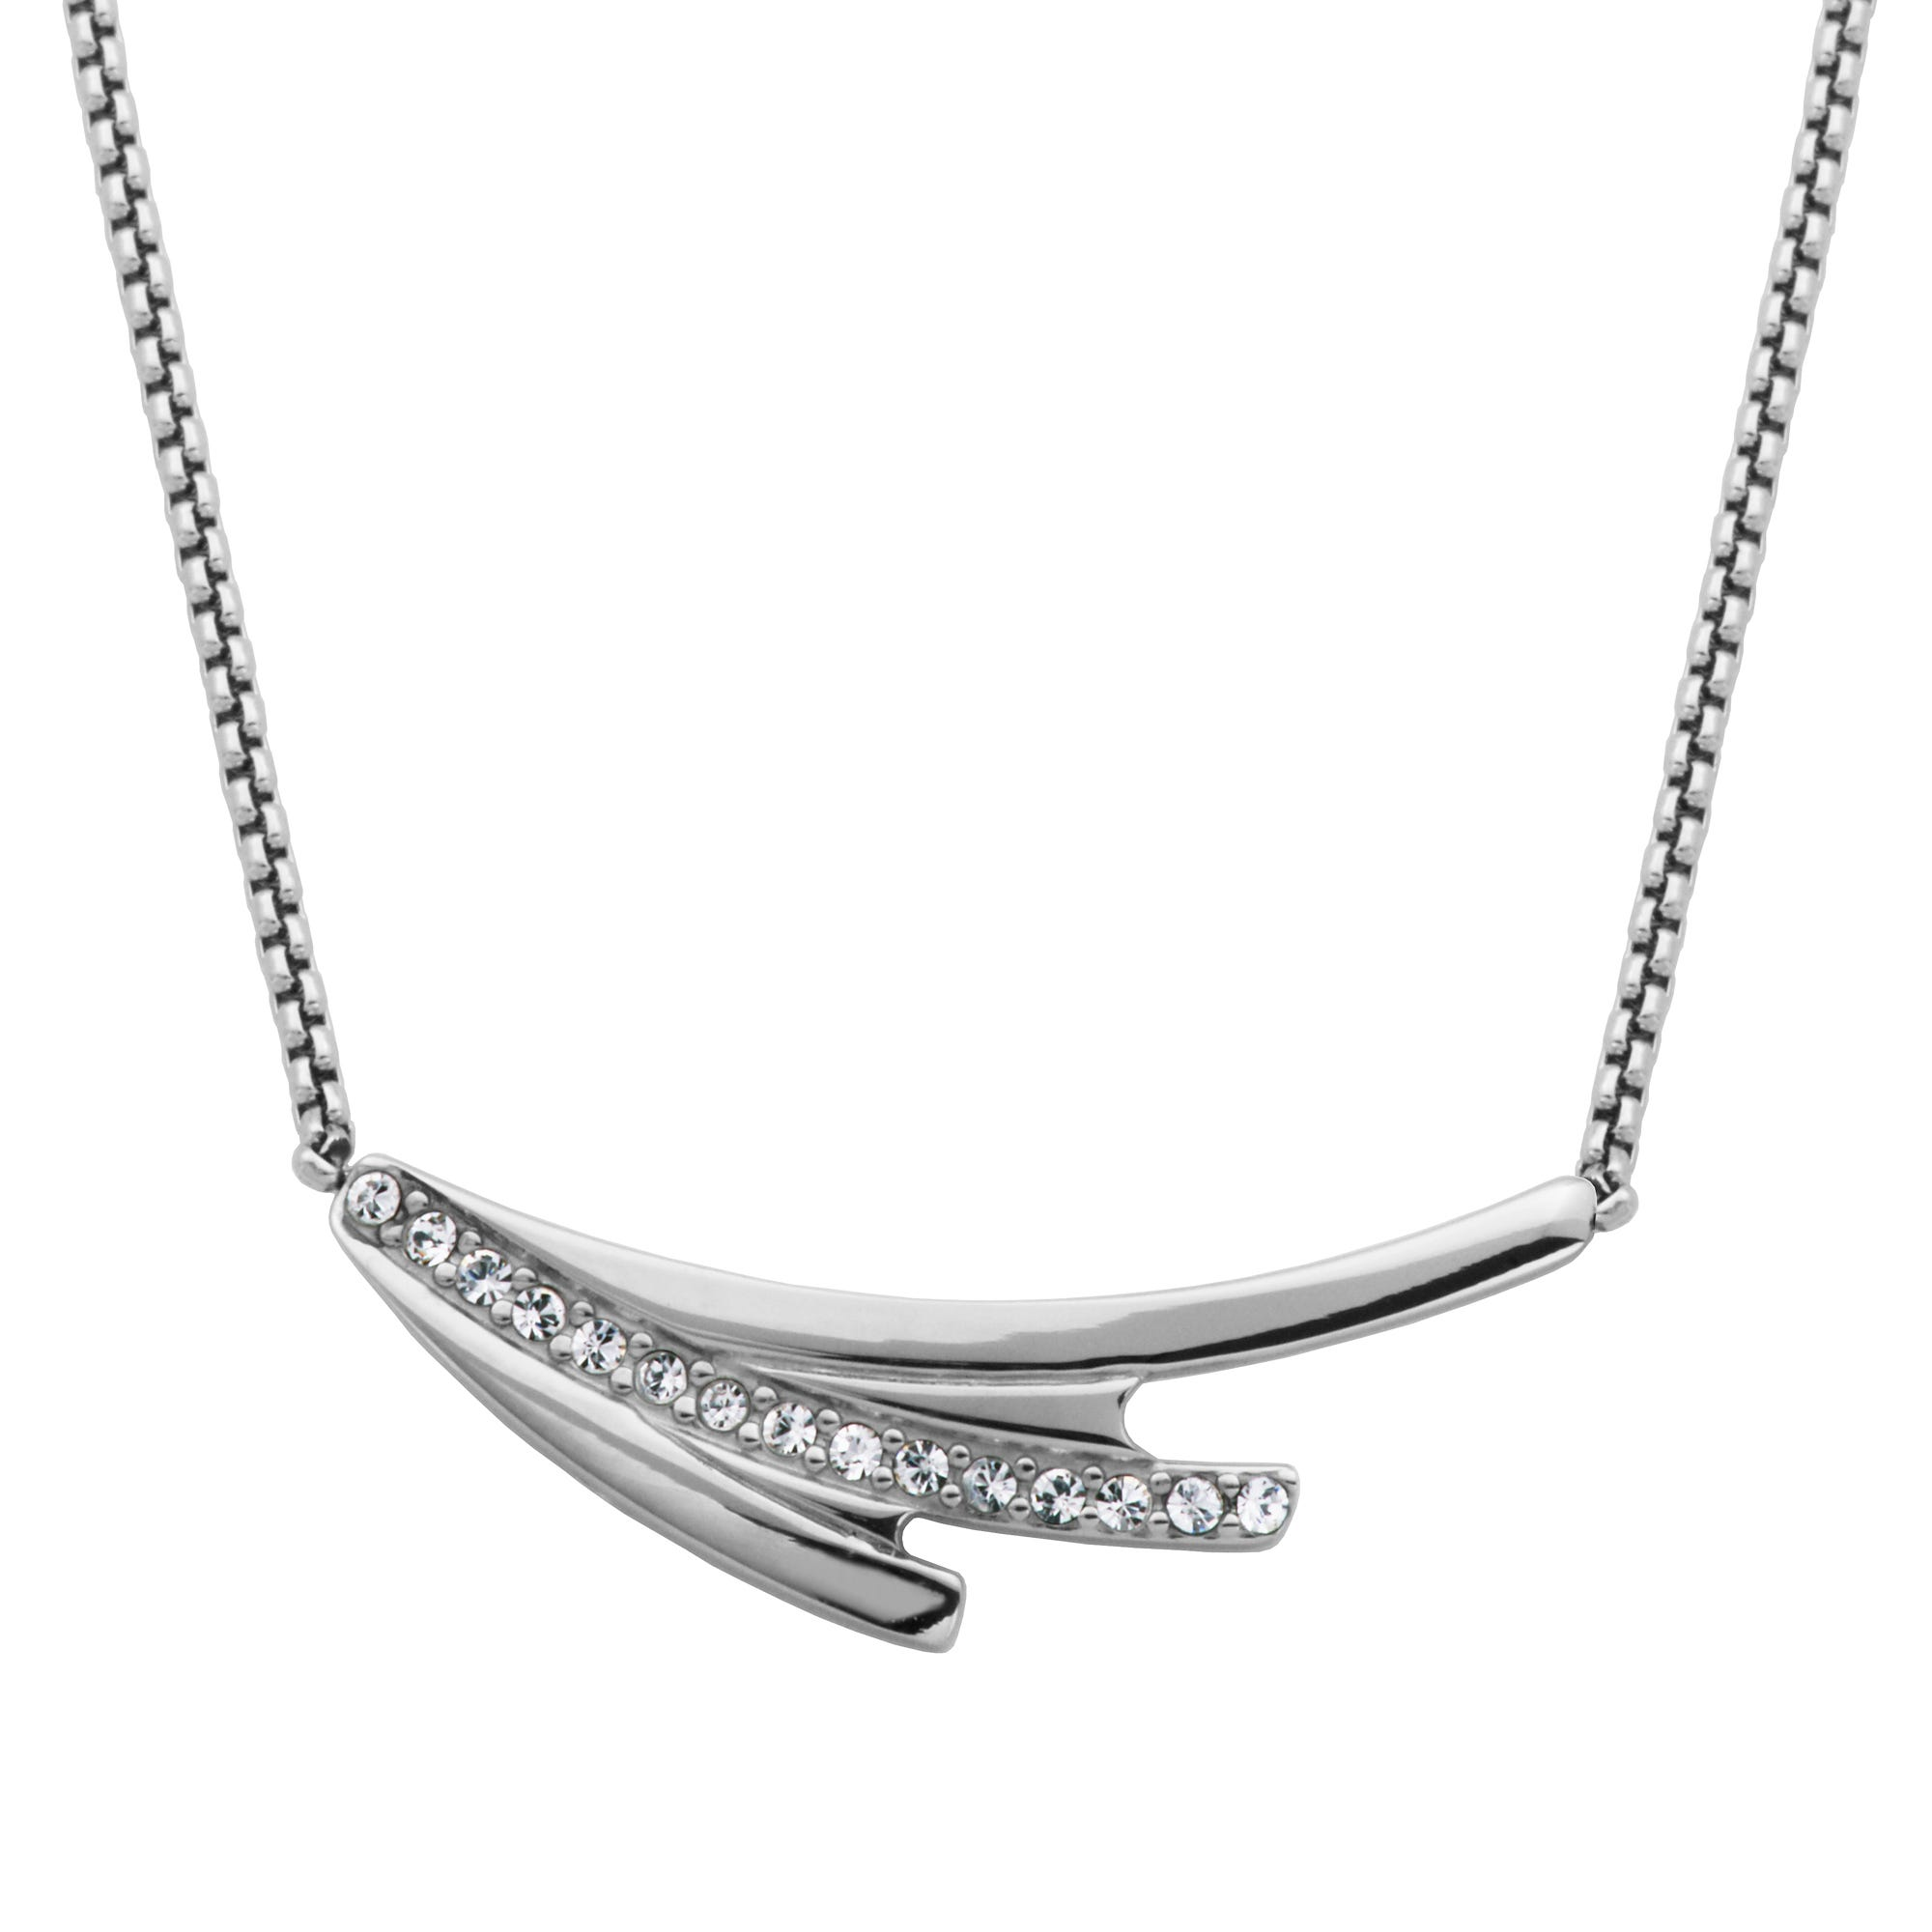 Abstract Brush Stroke Fashion Necklace with Crystal Accent in Stainless Steel